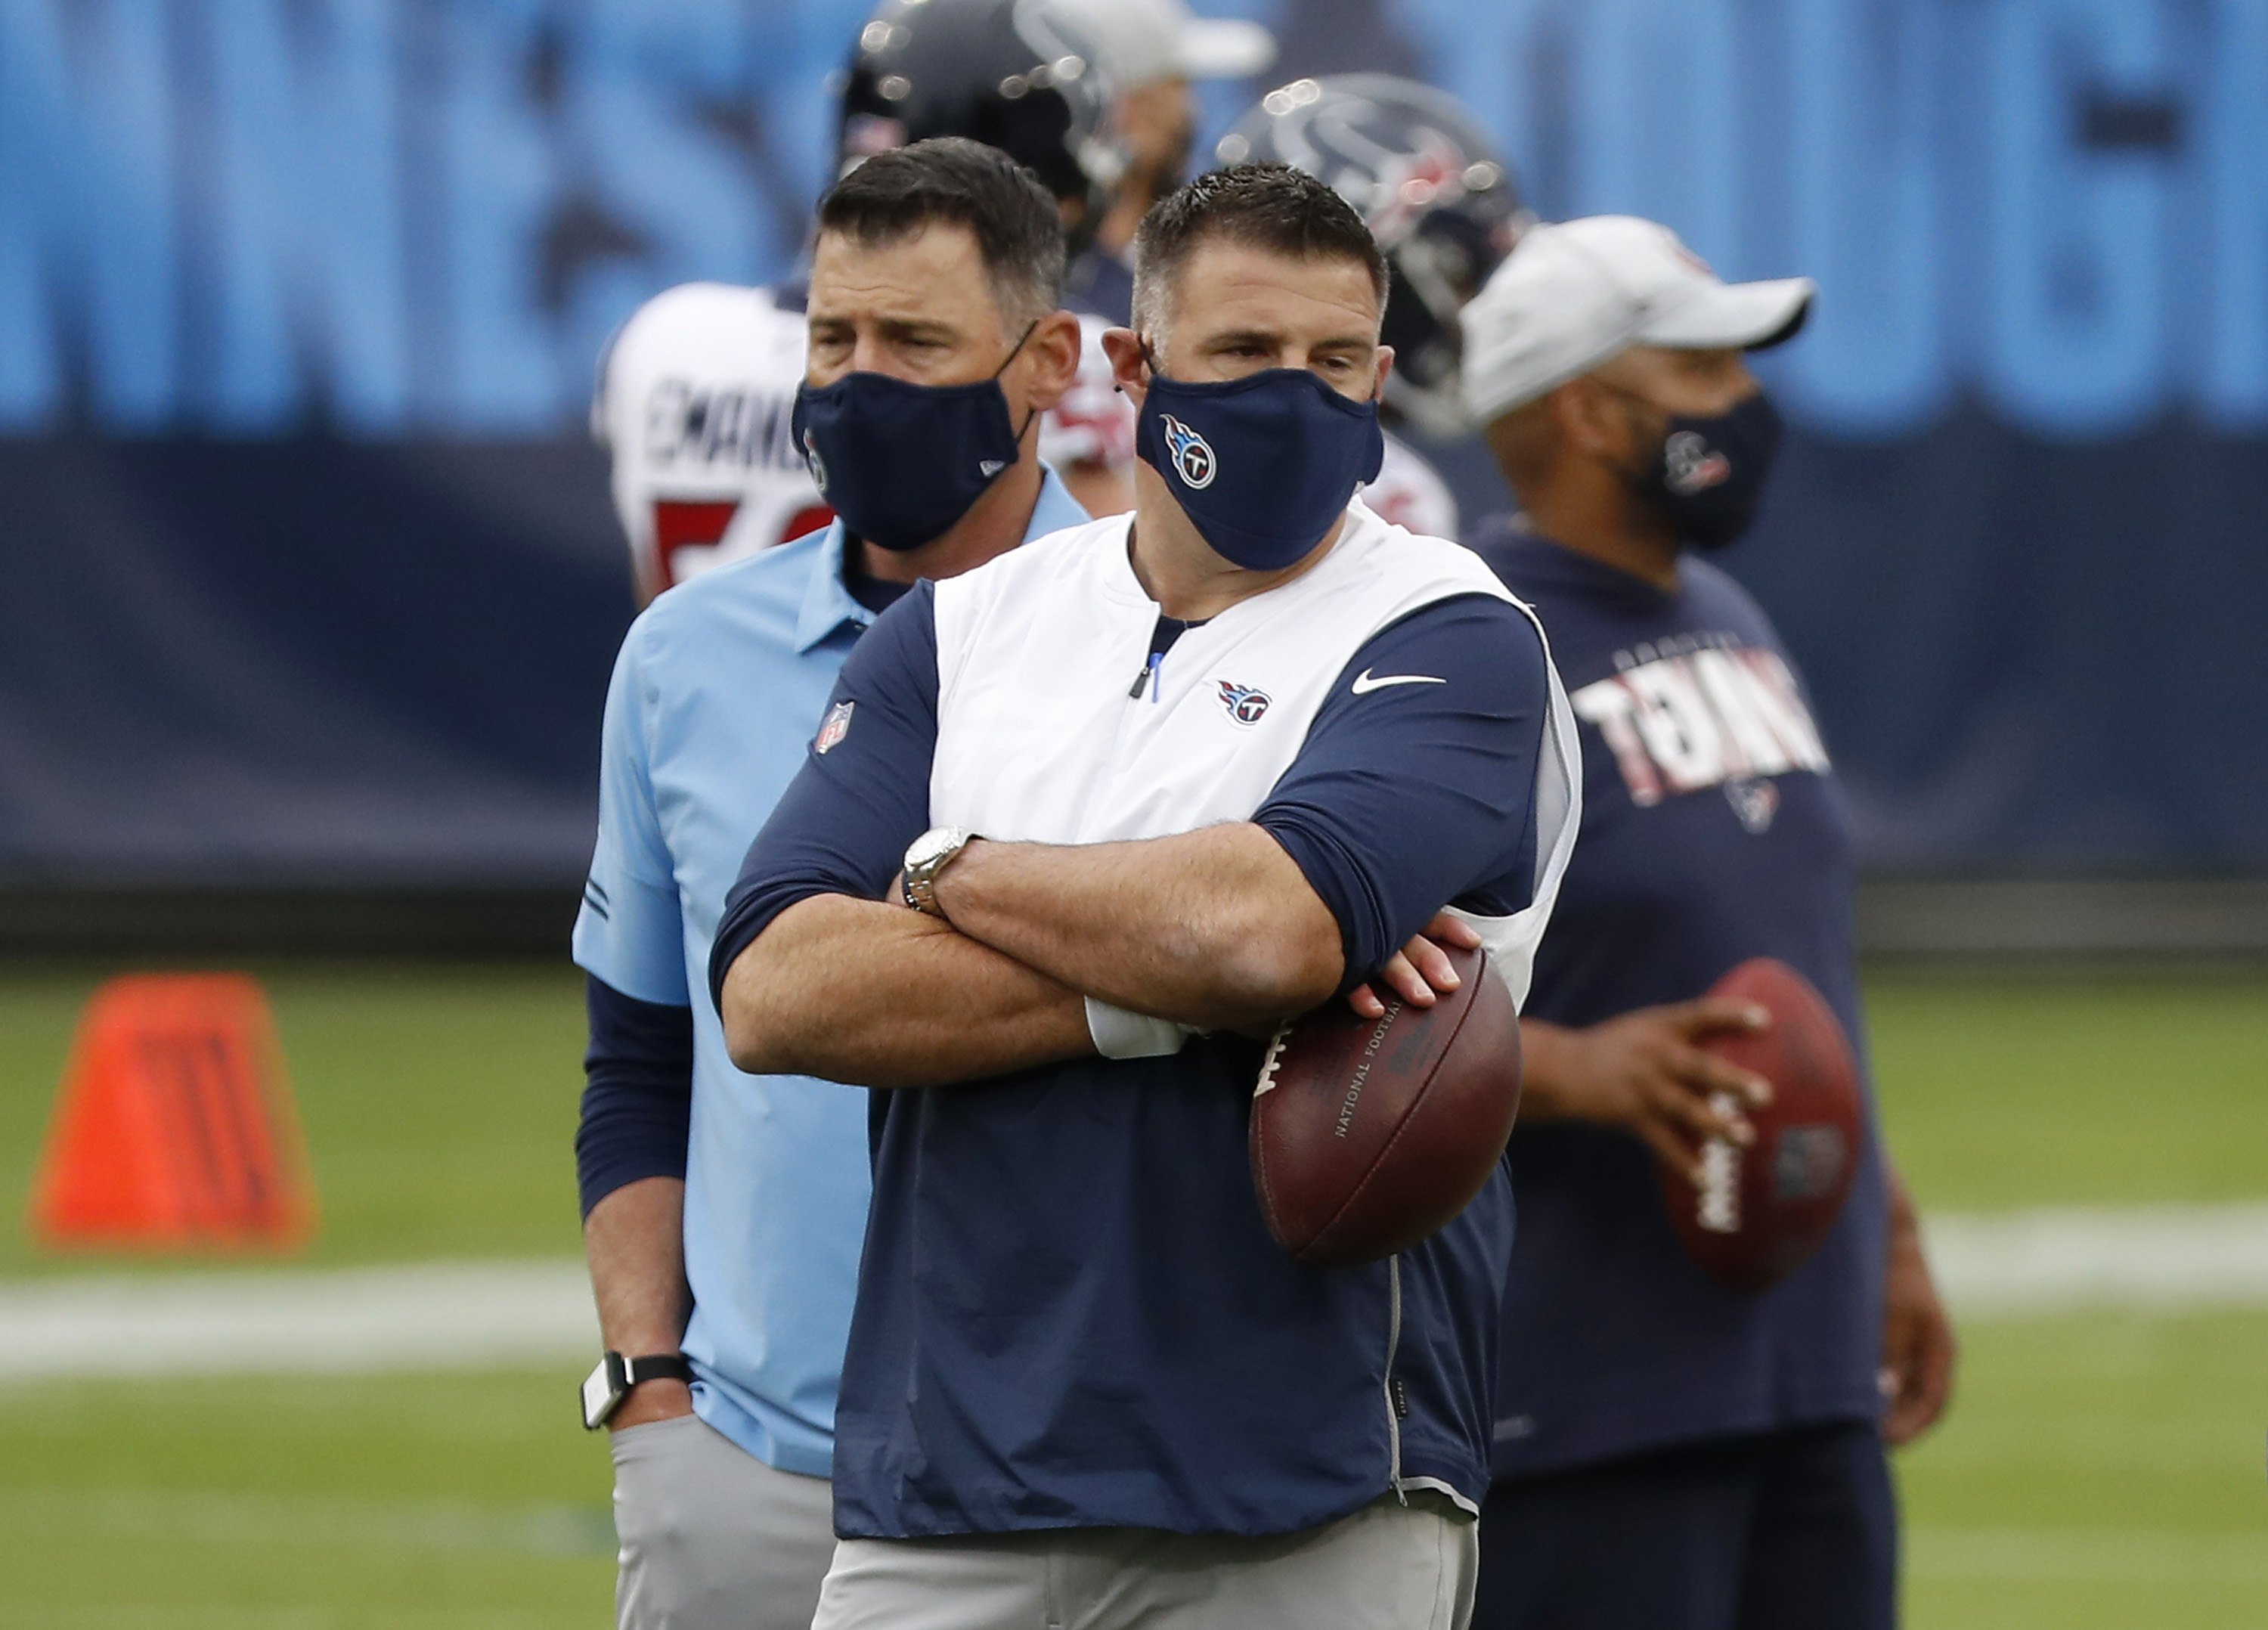 Tennessee Titans head coach Mike Vrabel had multiple legal issues before he entered the coaching business.